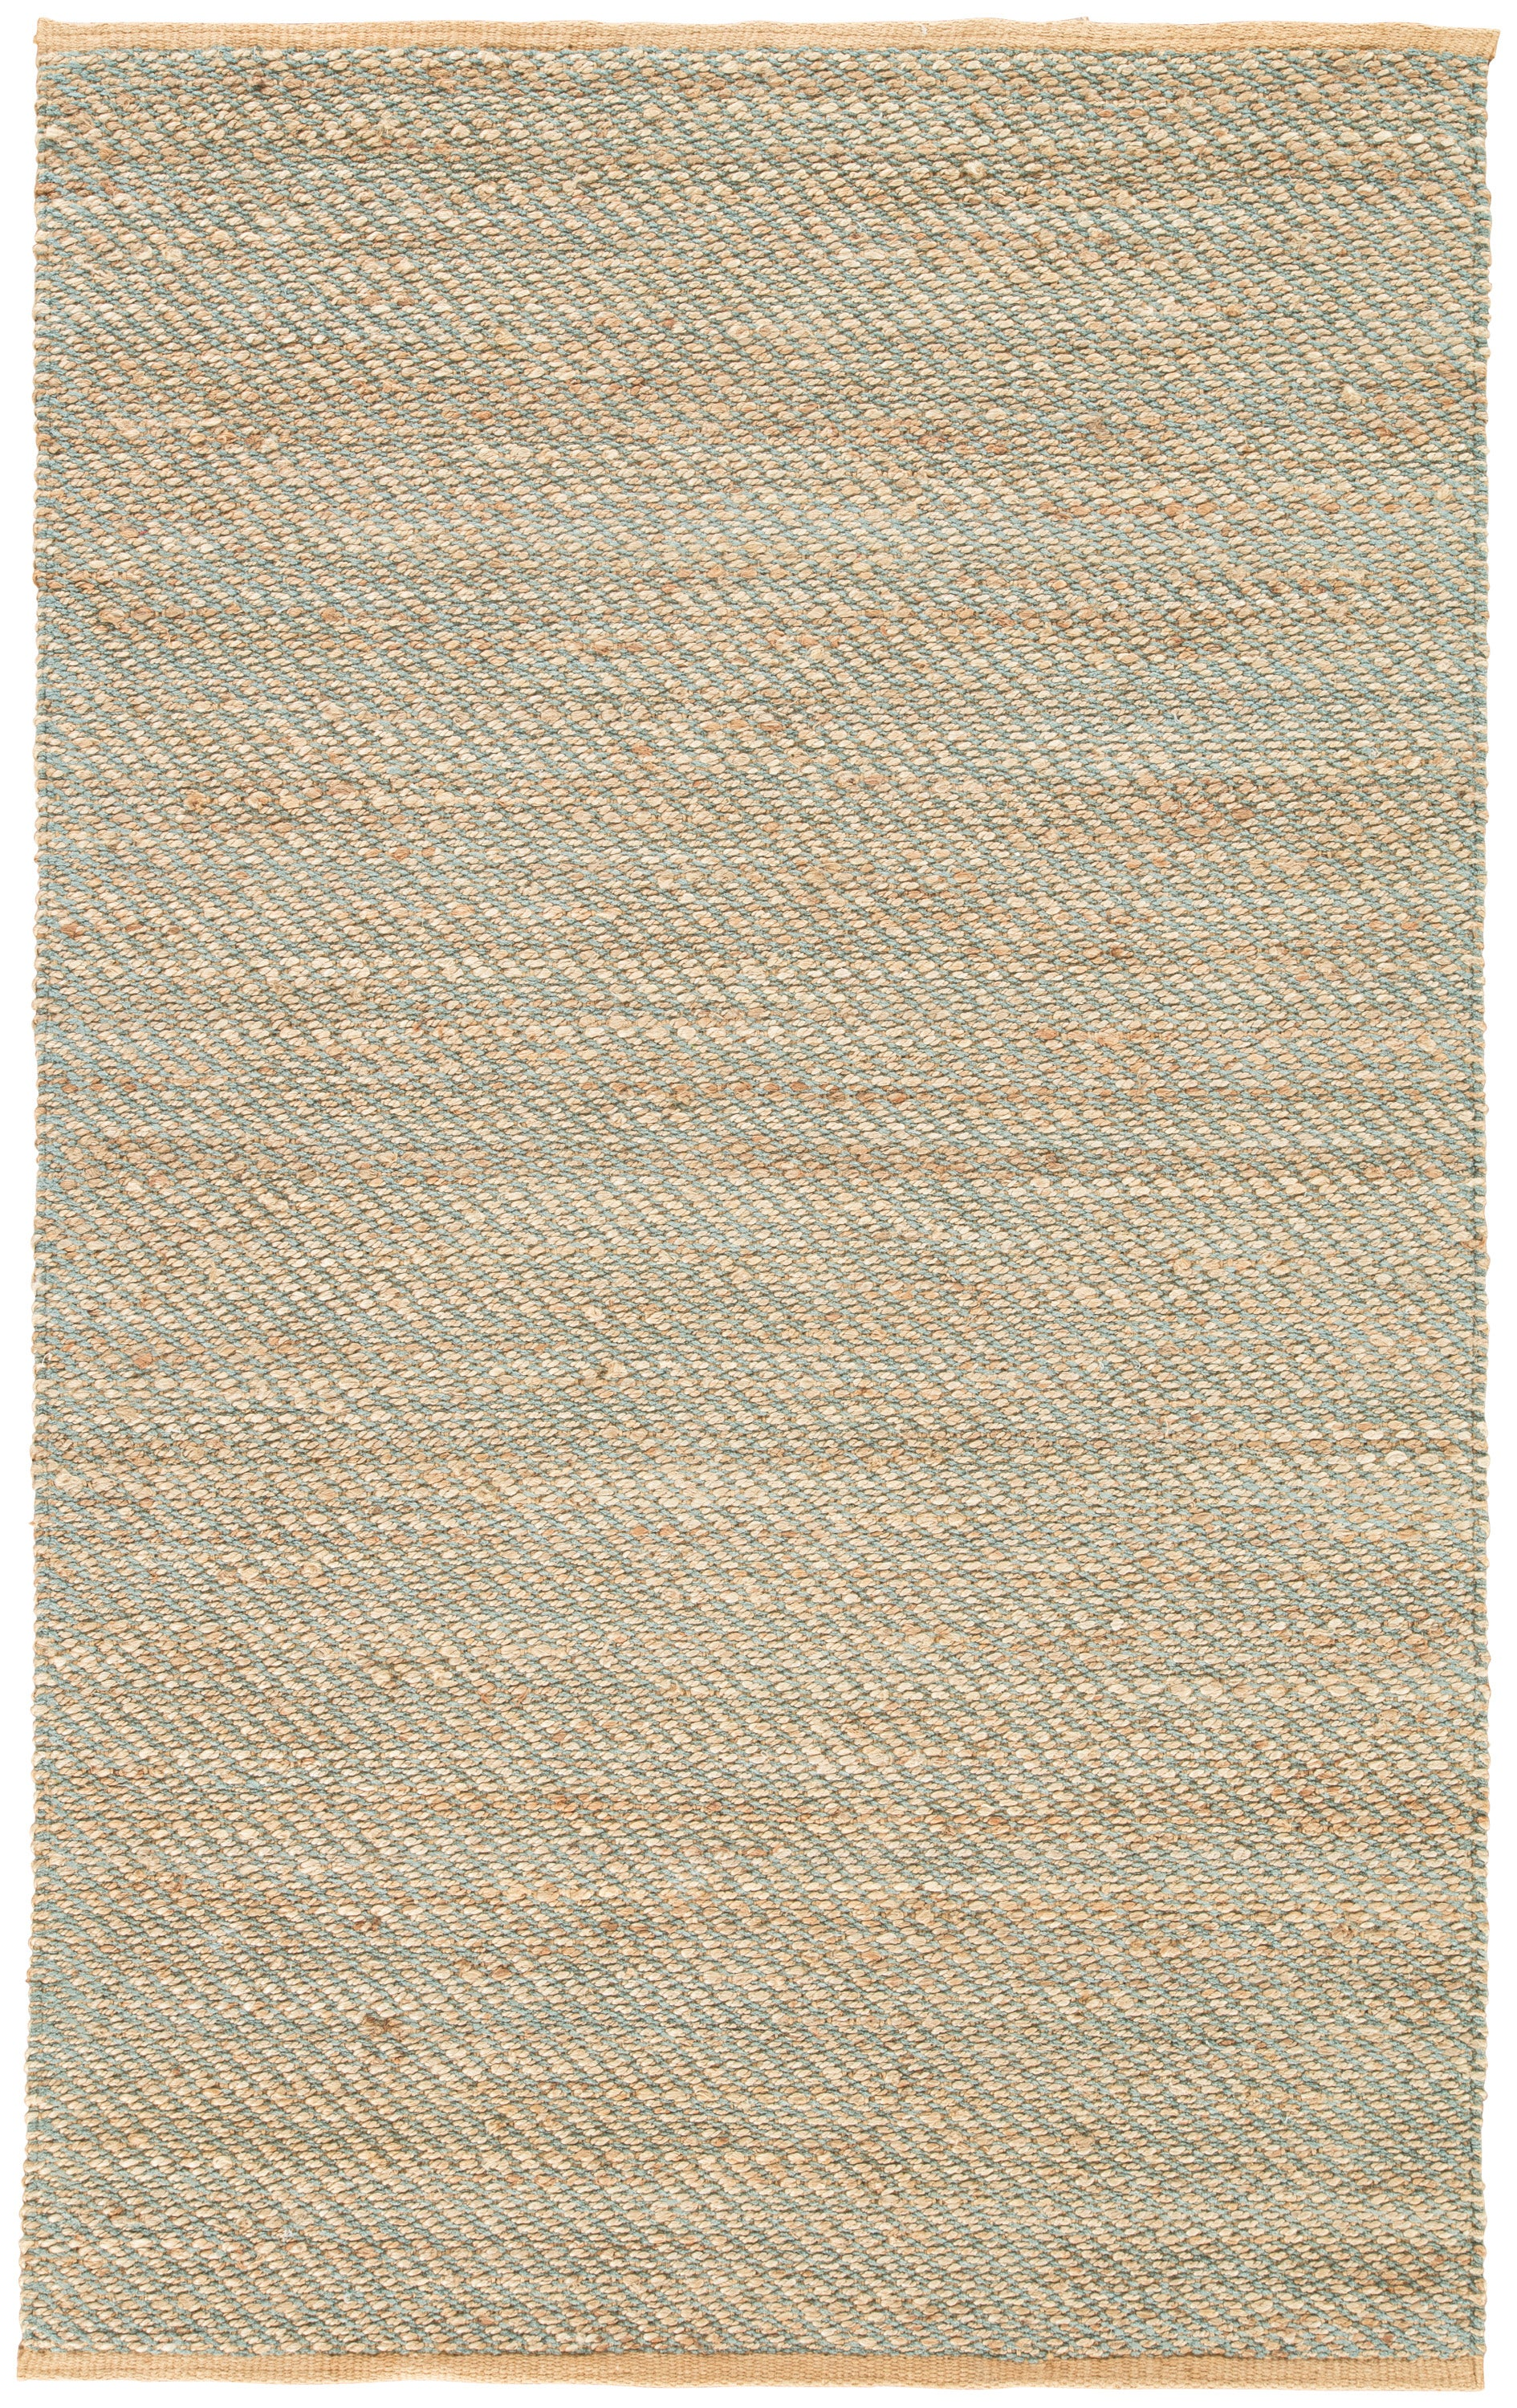 Rectangle Lightblue Solid Hand Woven Blends Transitional recommended for Bedroom, Bathroom, Dining Room, Office, Hallway, Living Room